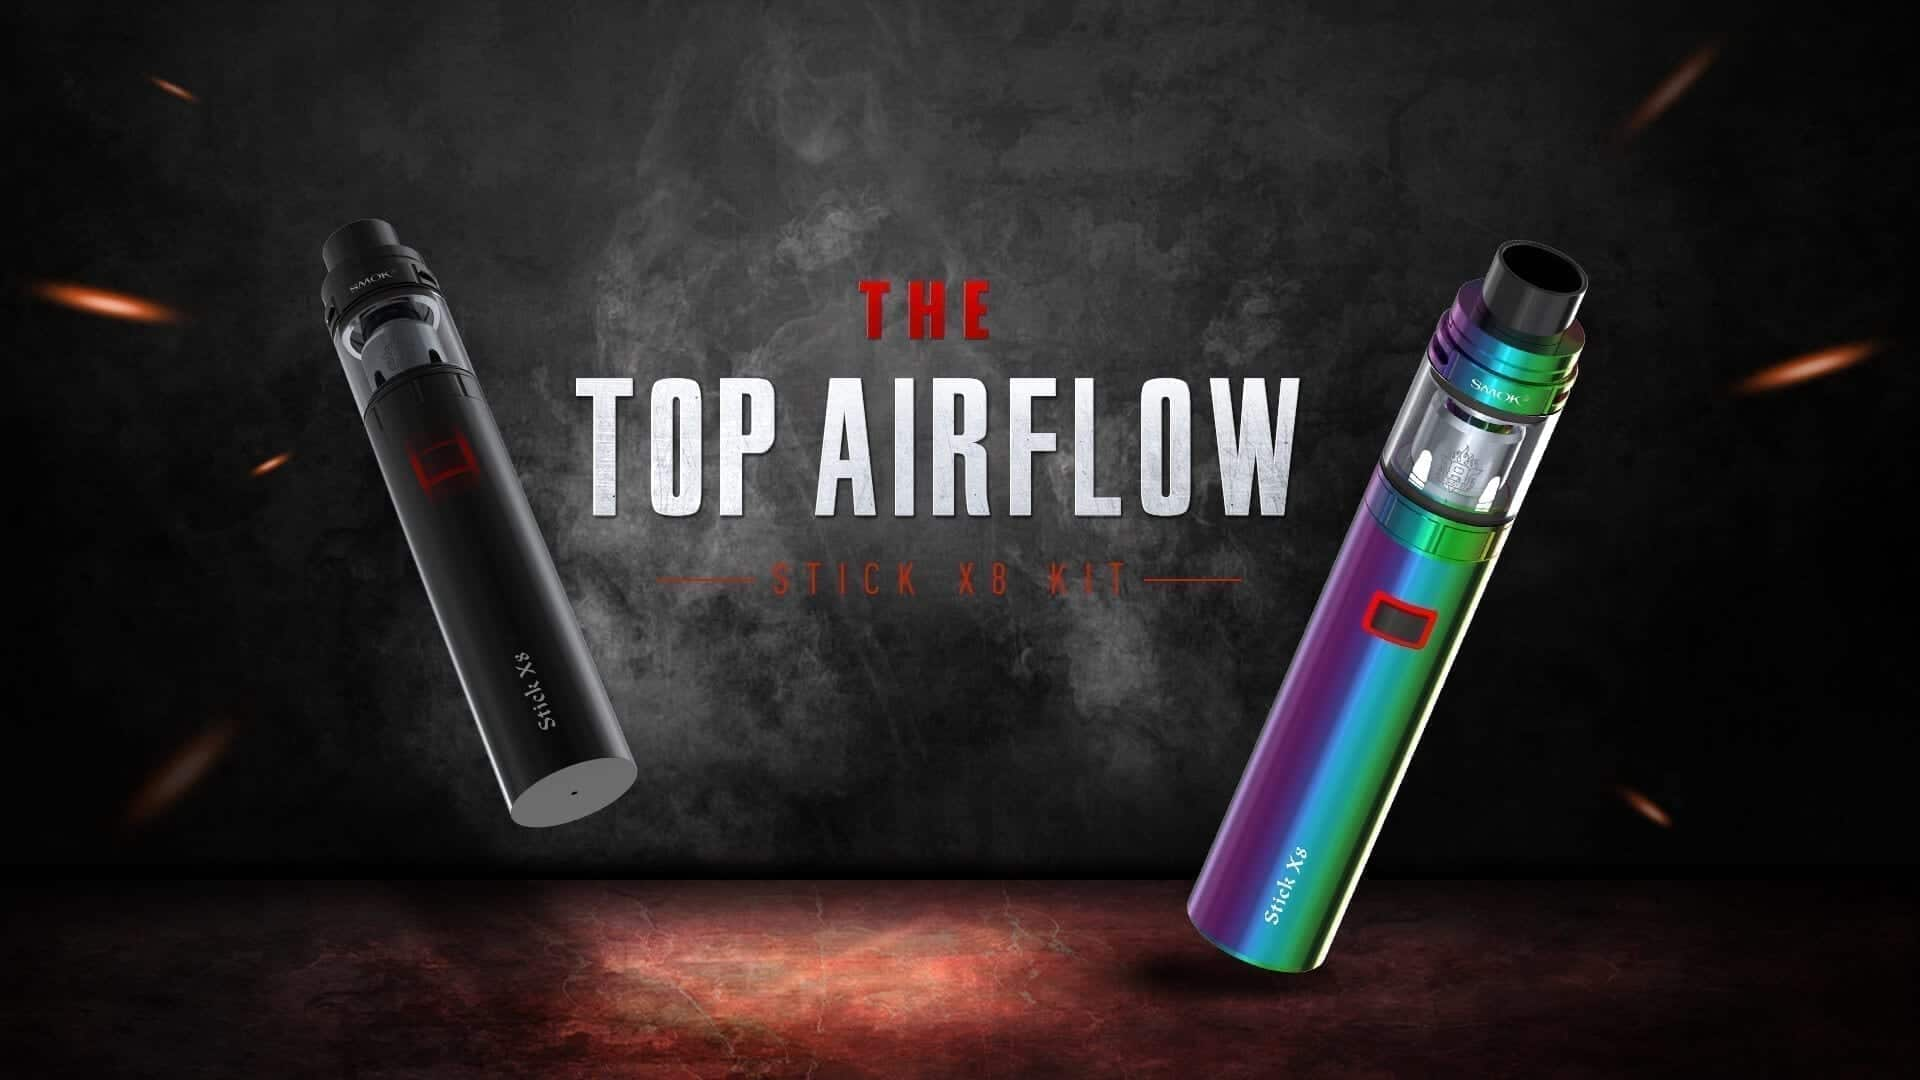 SMOK STICK X8 featured image